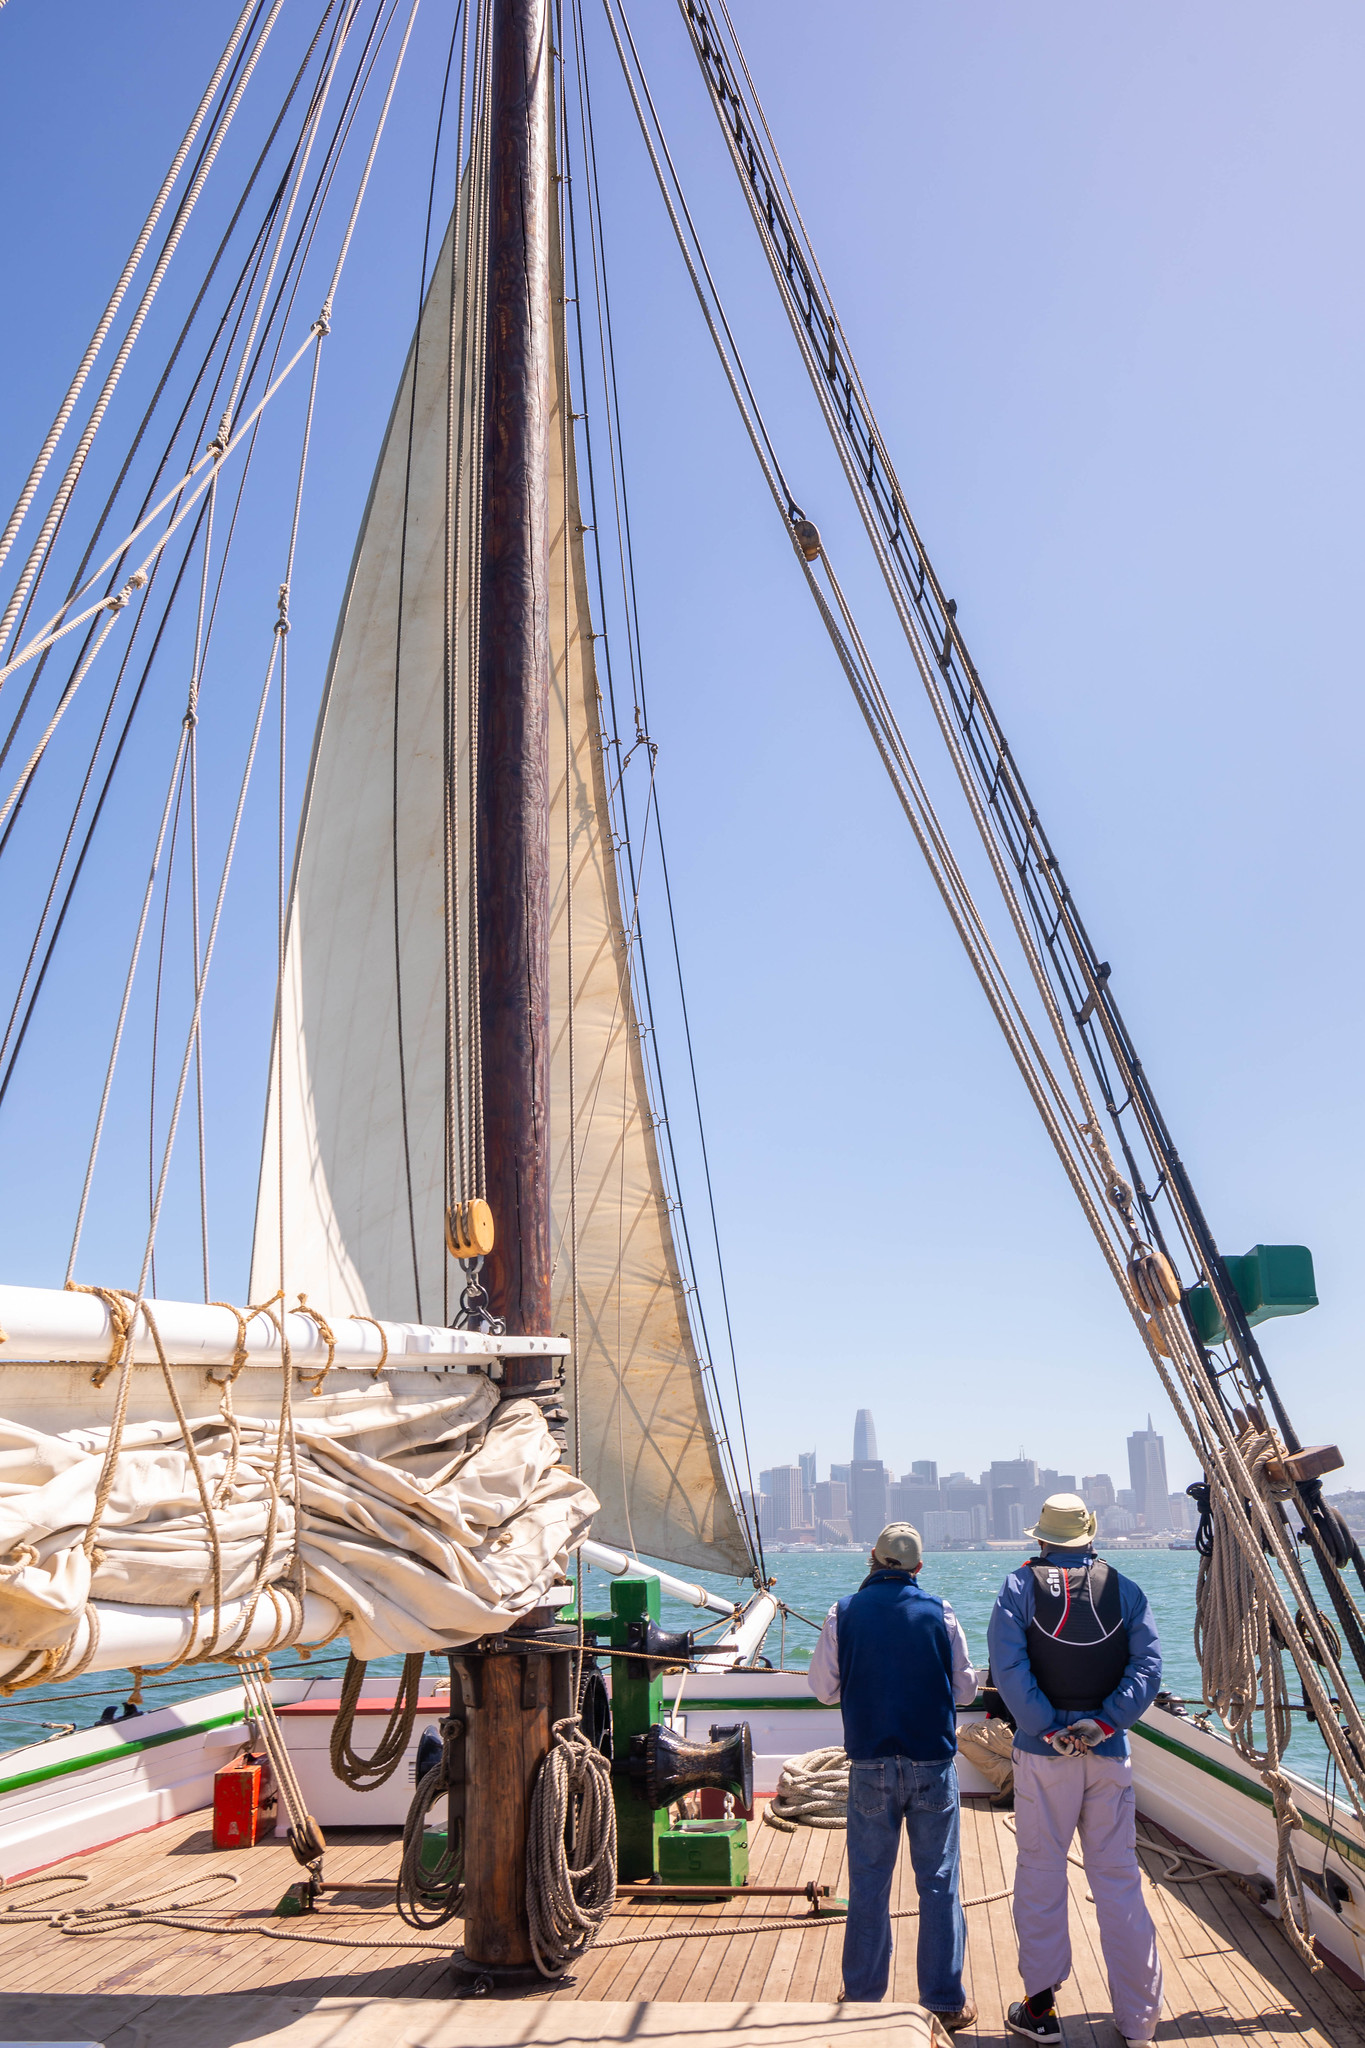 06.21. Sailing on Alma, San Francisco Maritime National Historic Museum